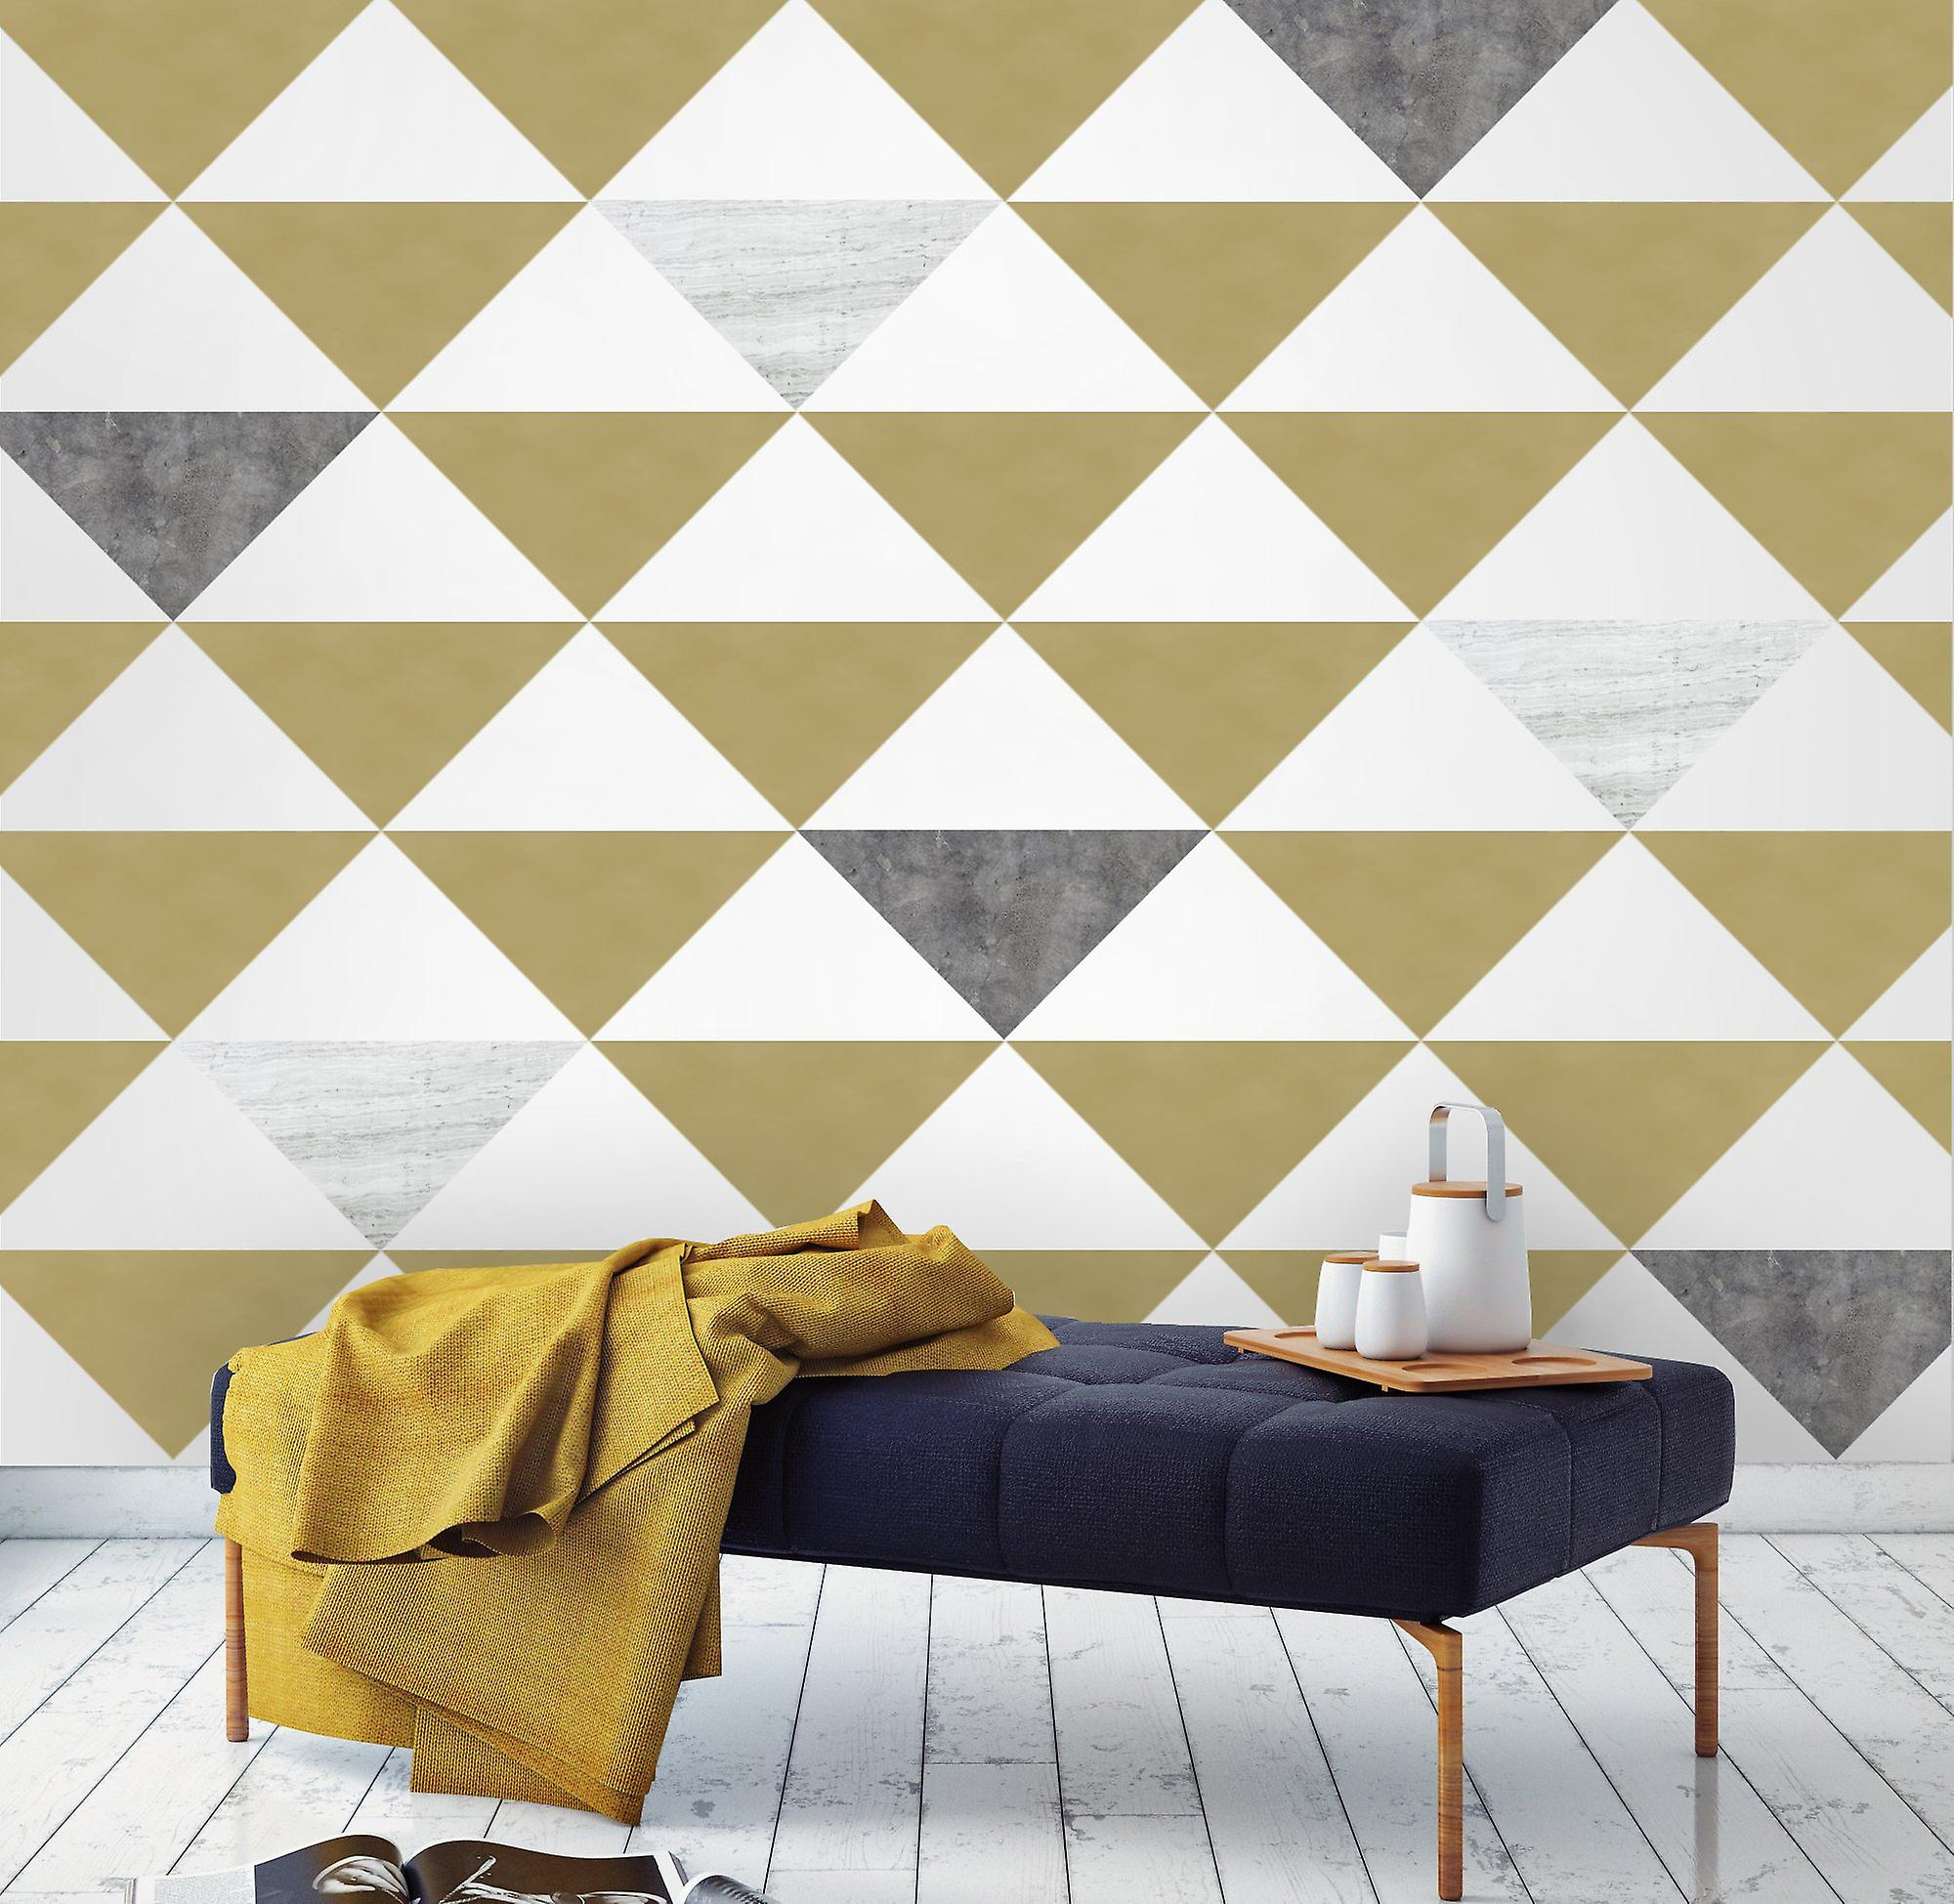 Kalaand large triangle wall decals